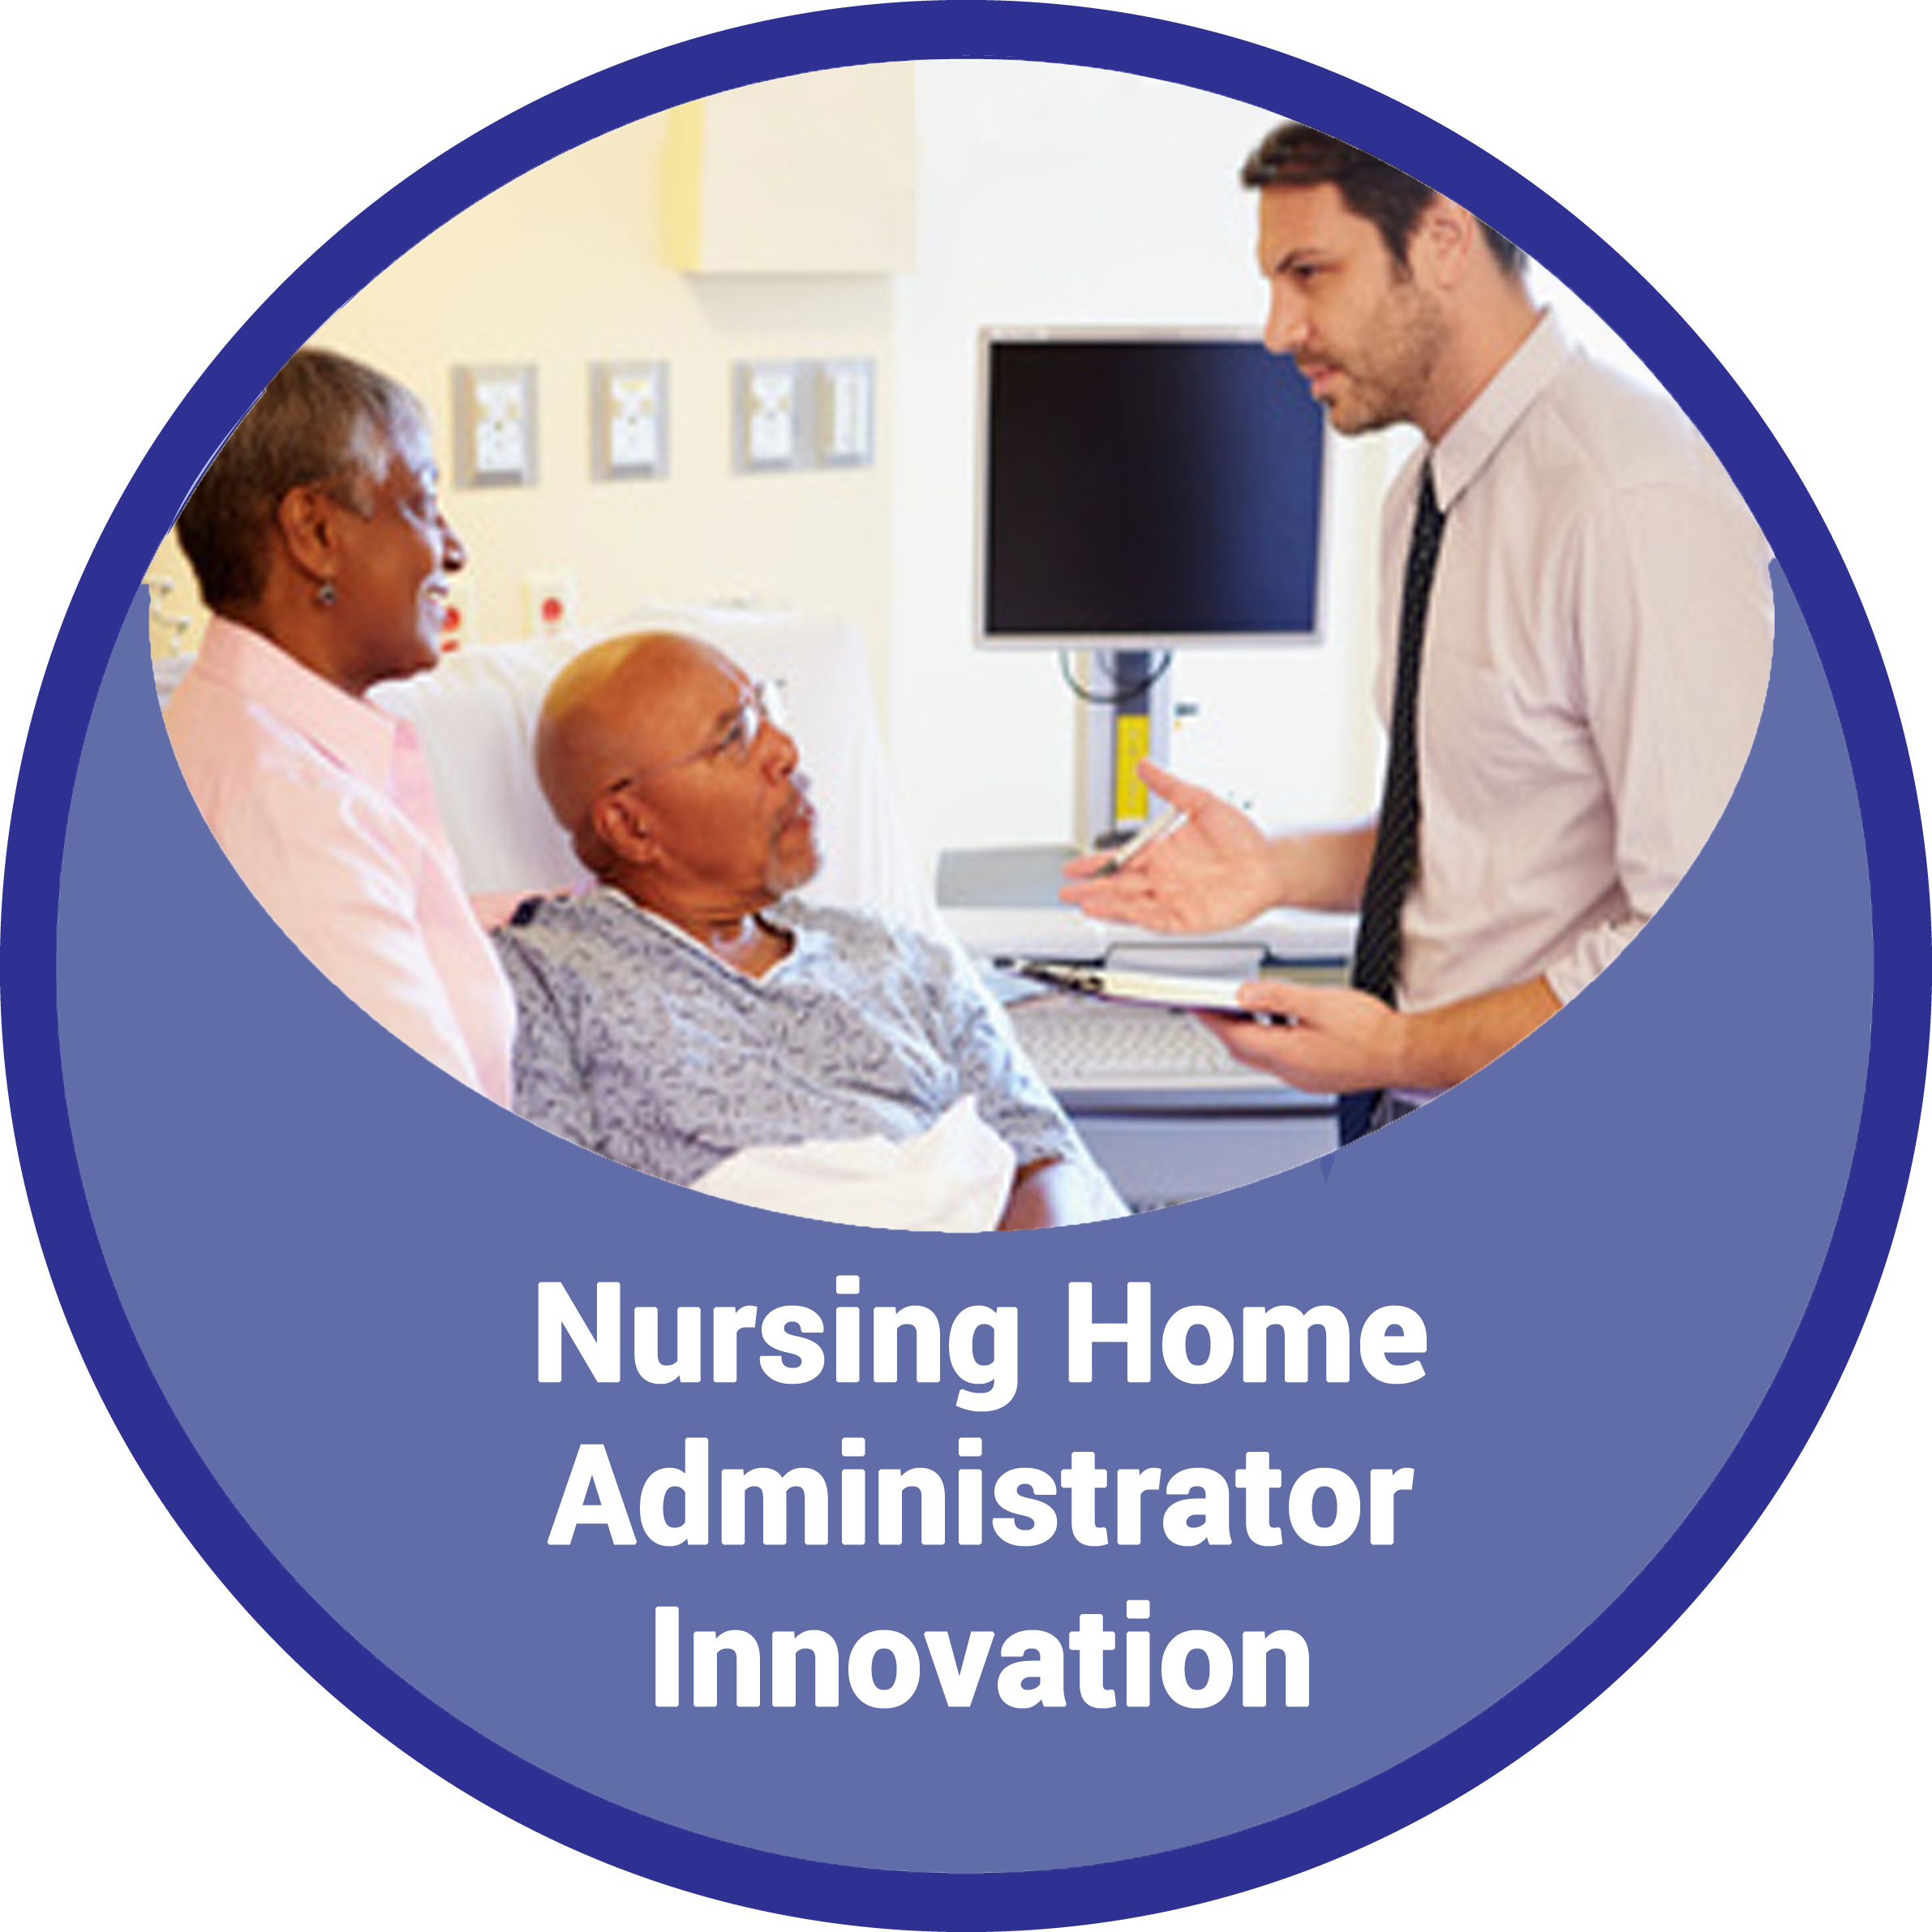 nursing home administration room picture